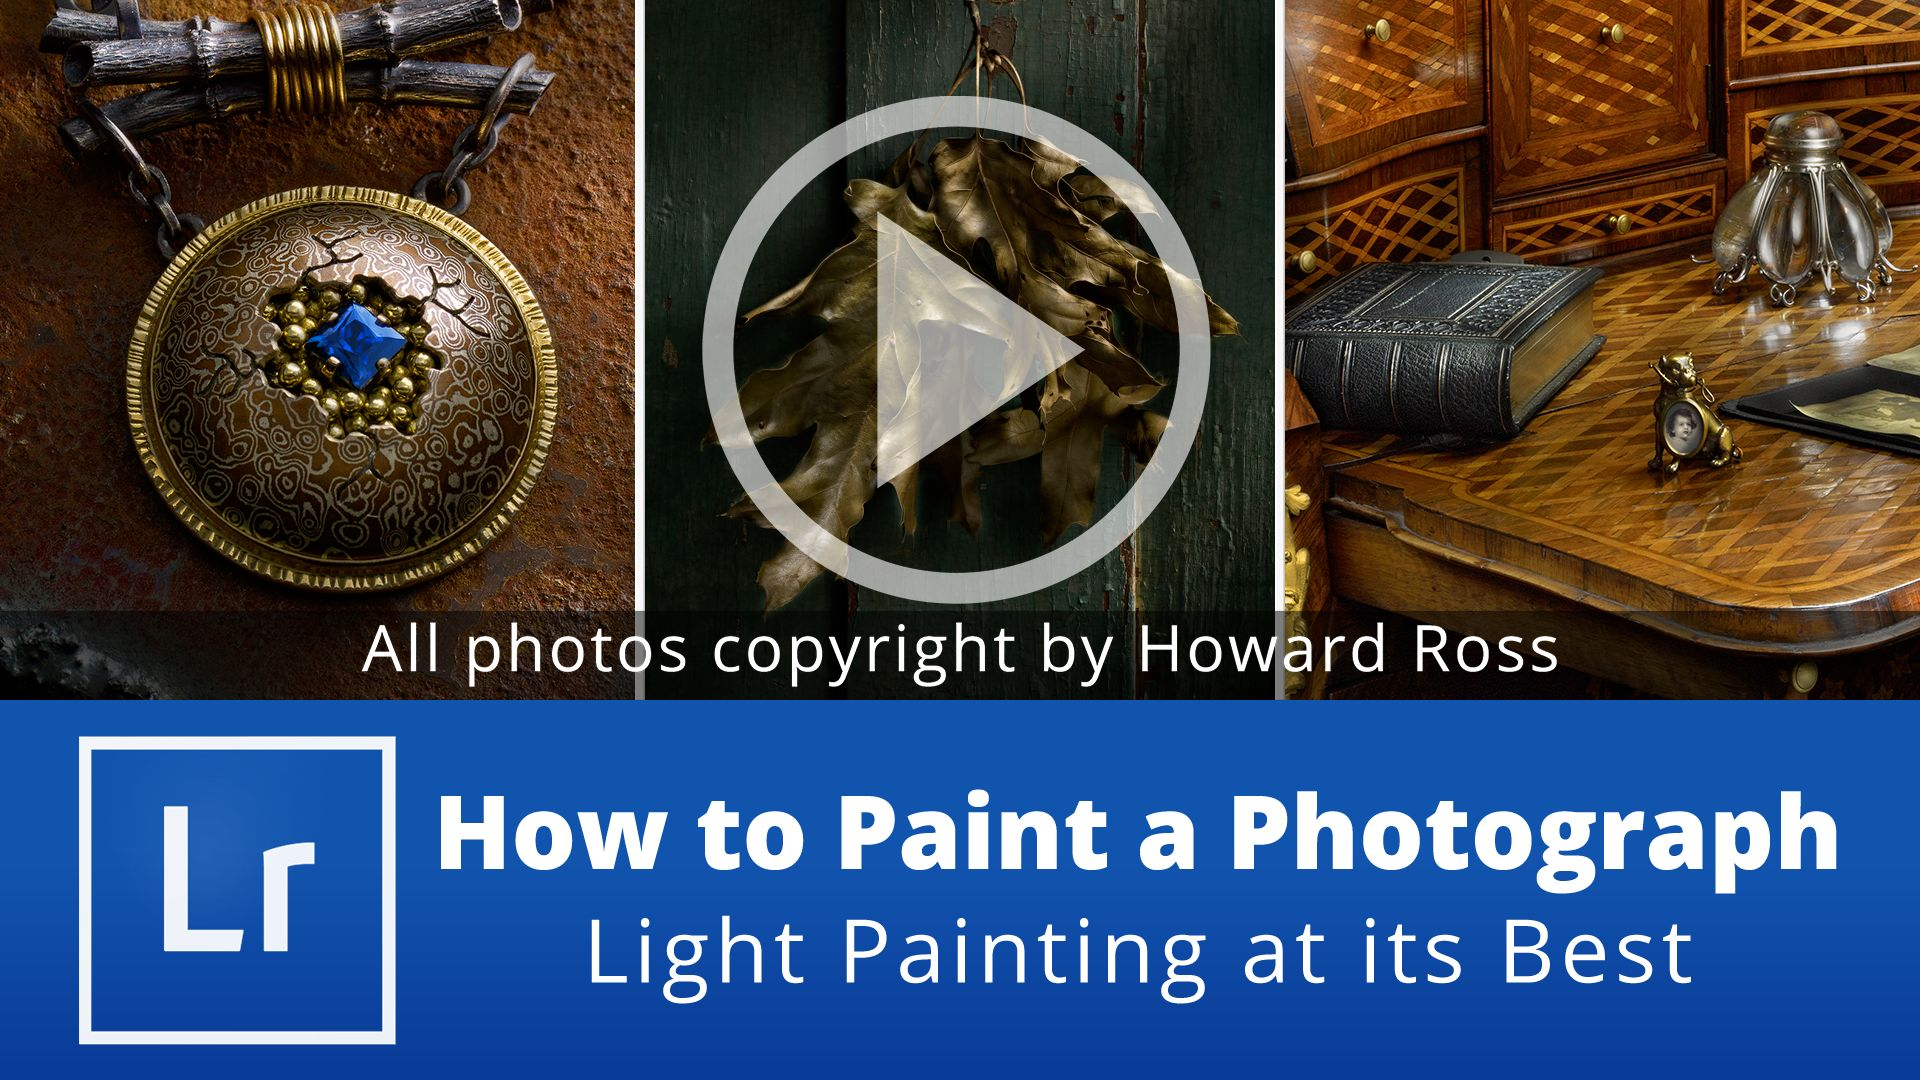 How to Paint a Photograph – Light Painting at its Best